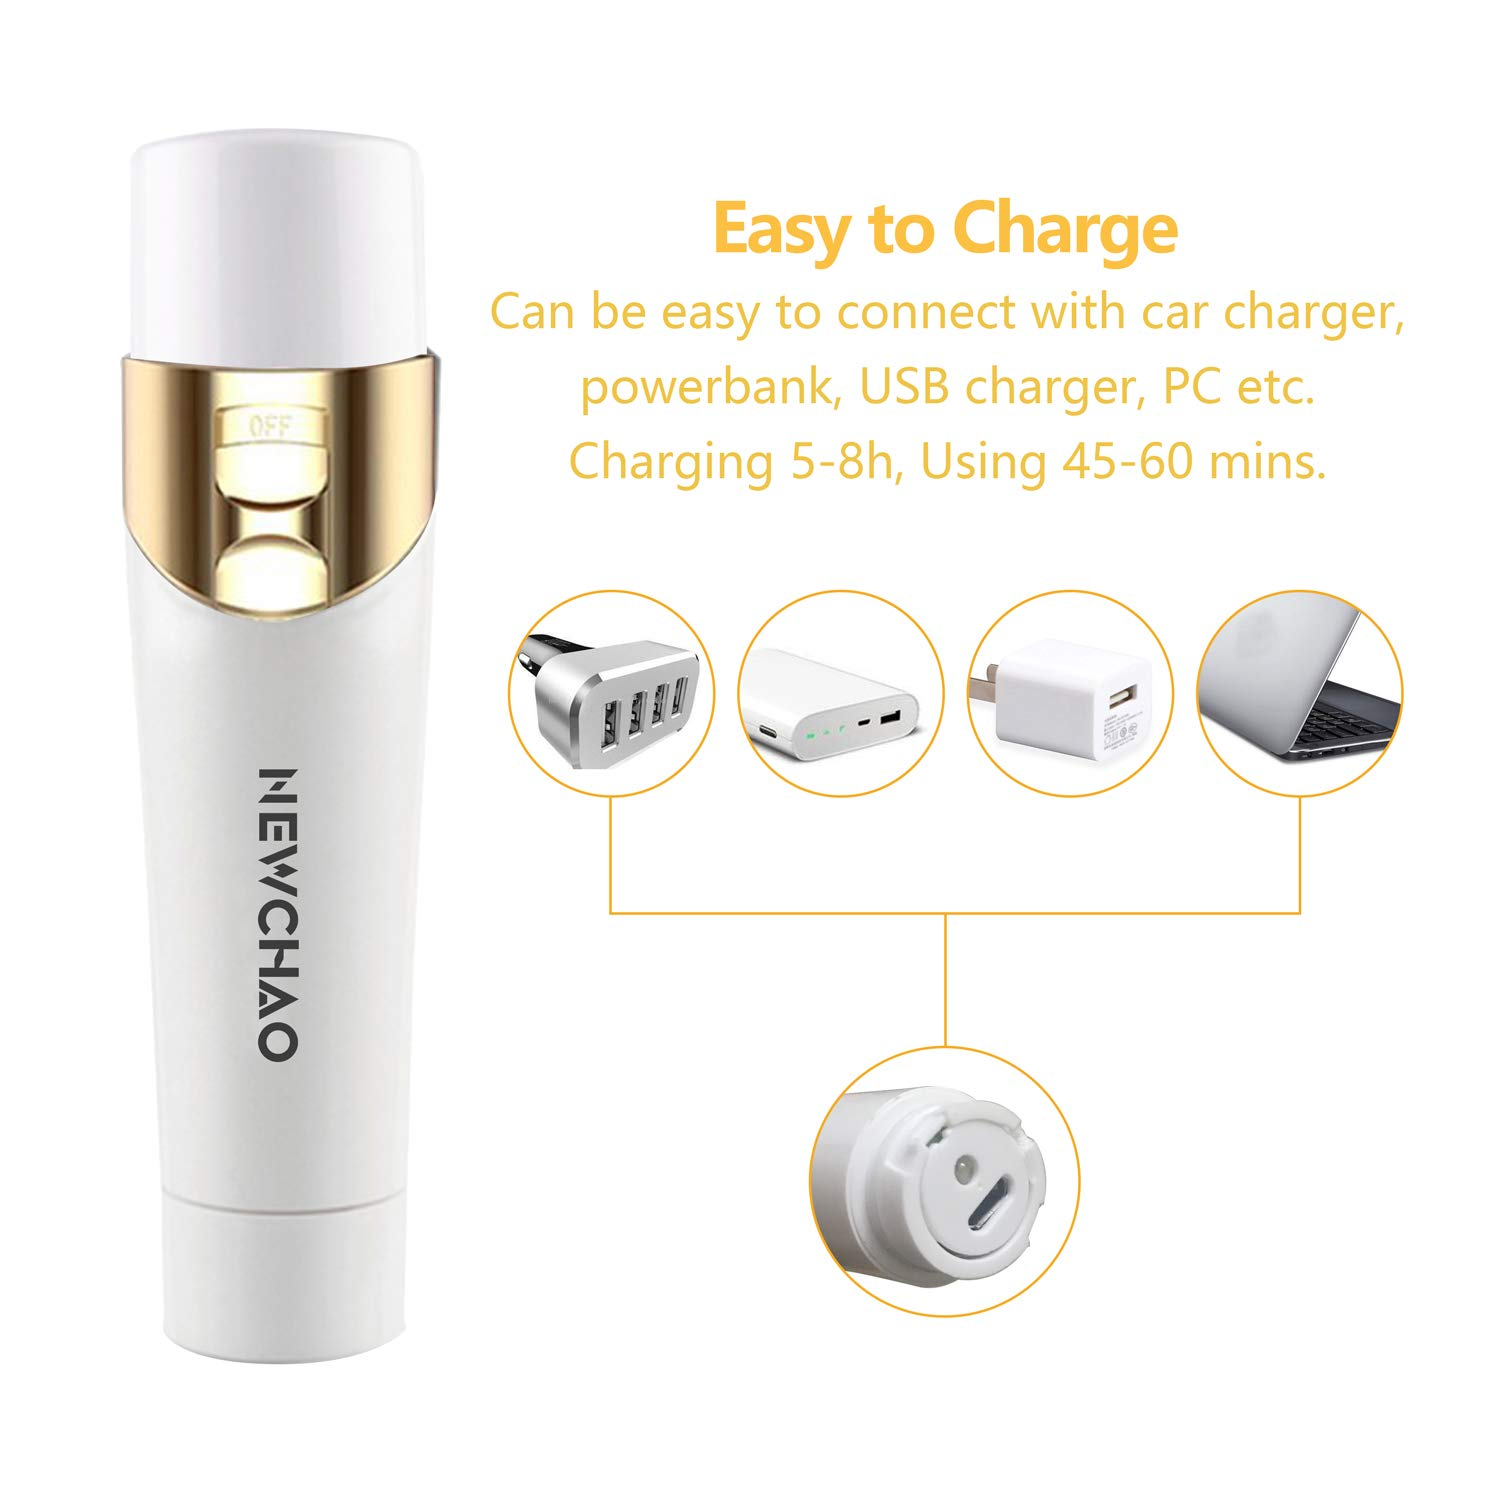 Facial Hair Removal for Women Hair Remover, 5 in 1 Painless Facial Body Shaver, Eyebrow Razors Epilator, Nose Bikini Hair Trimmer with USB Charging